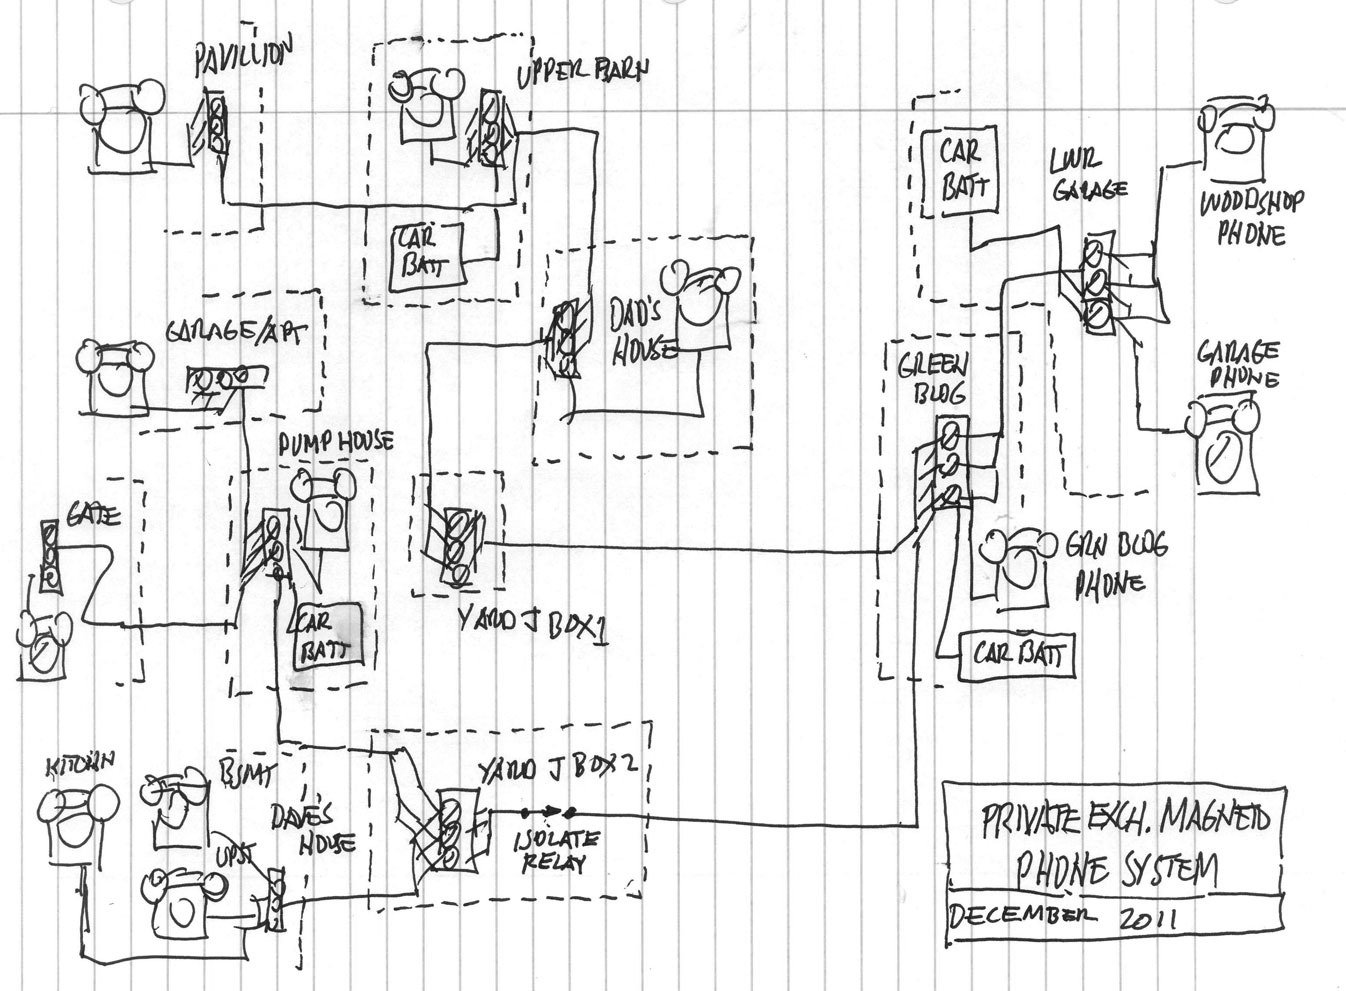 Phone Intercom Wiring Diagram